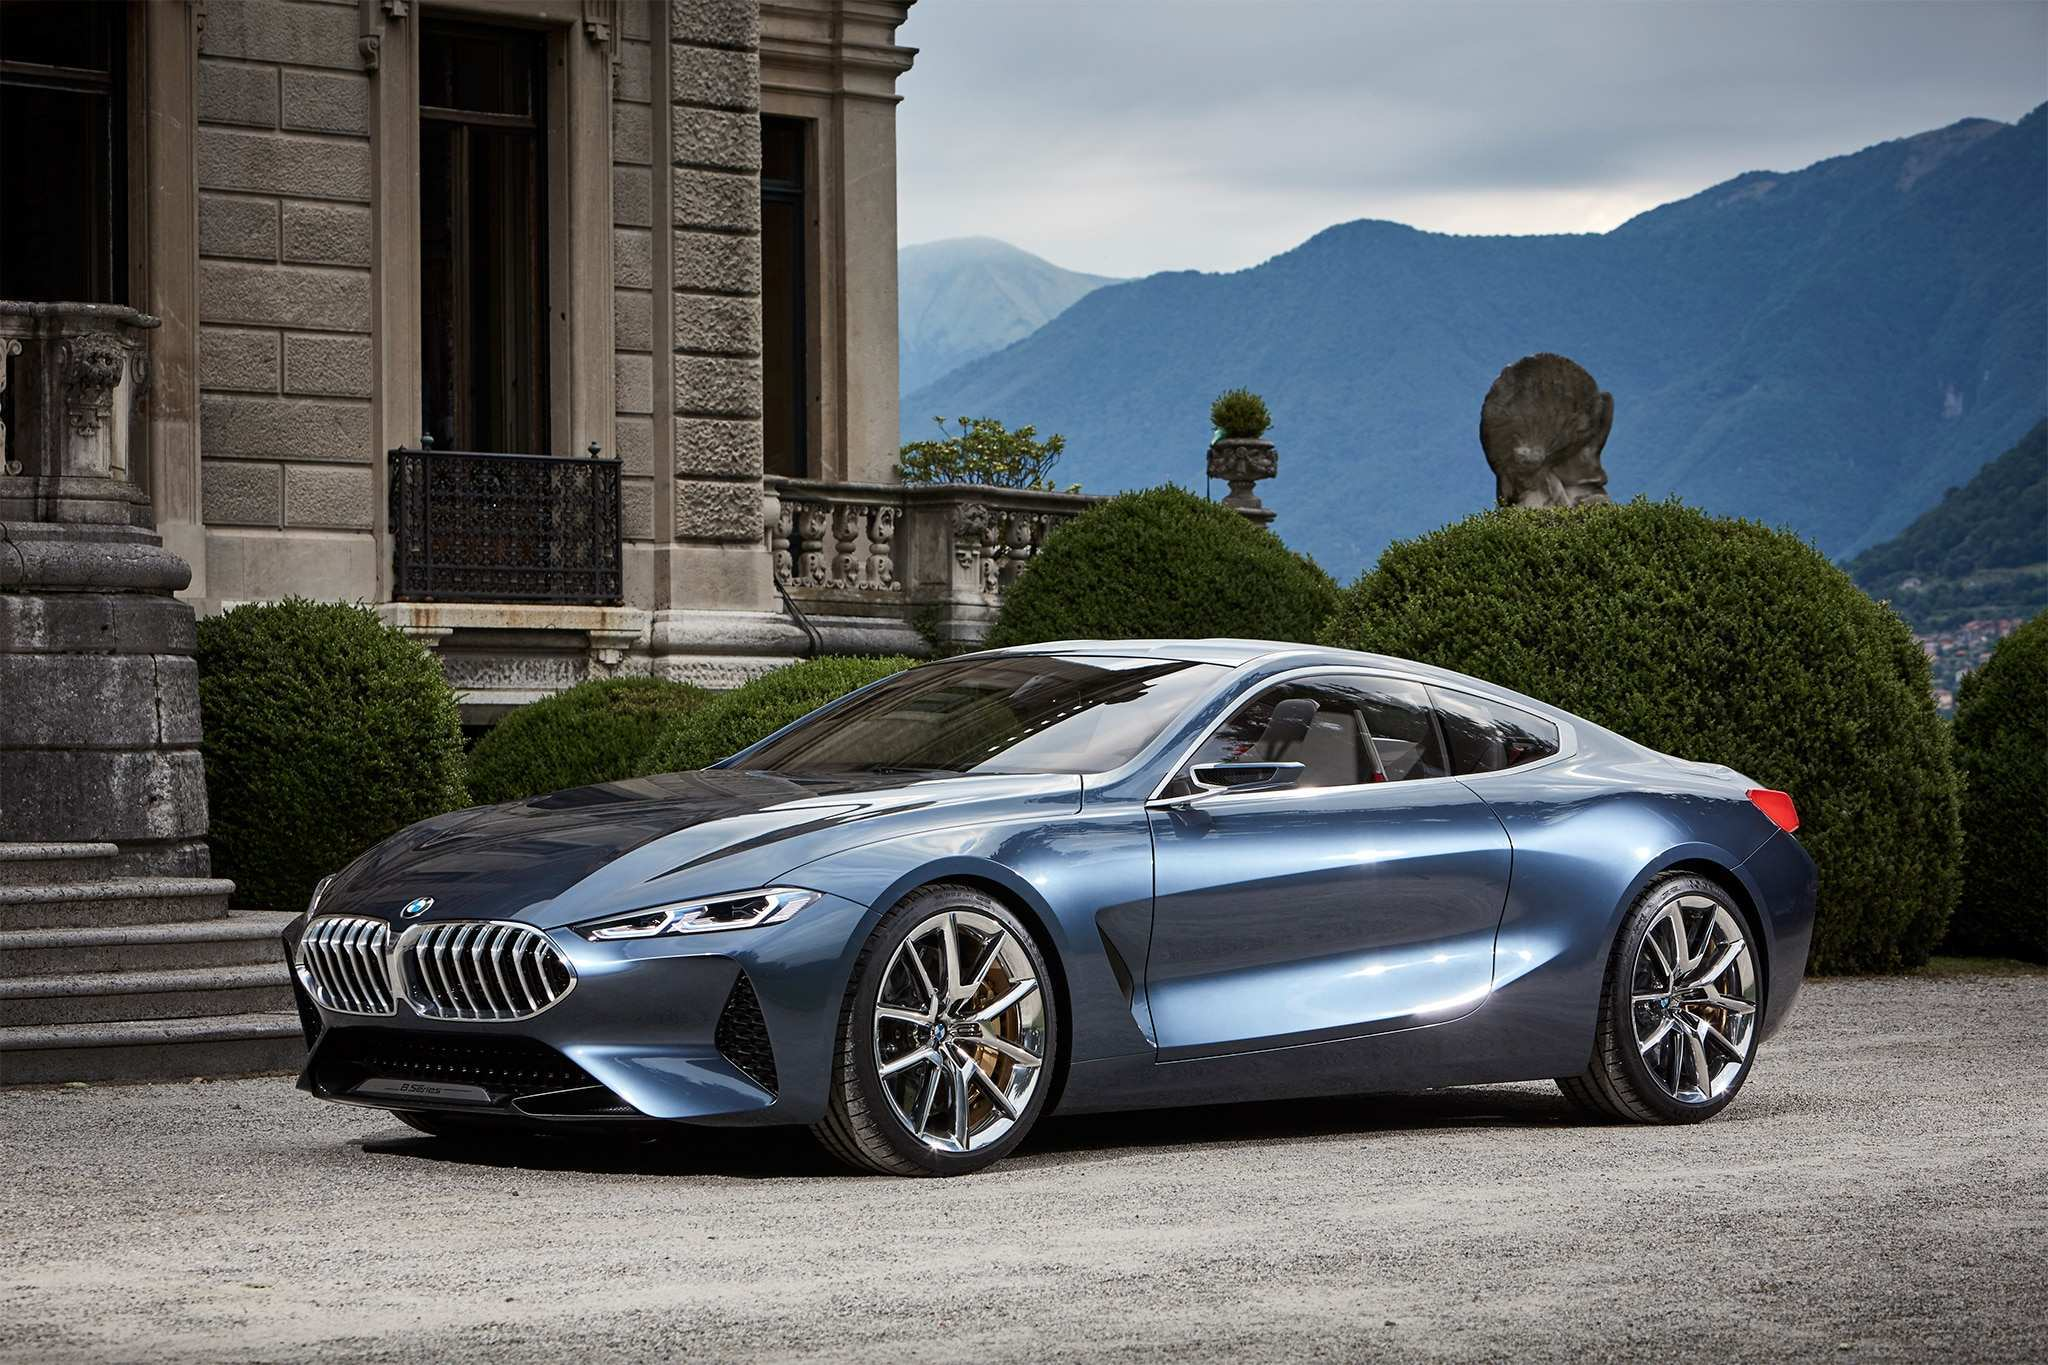 36 All New 2020 Bmw 8 Series Price Exterior And Interior